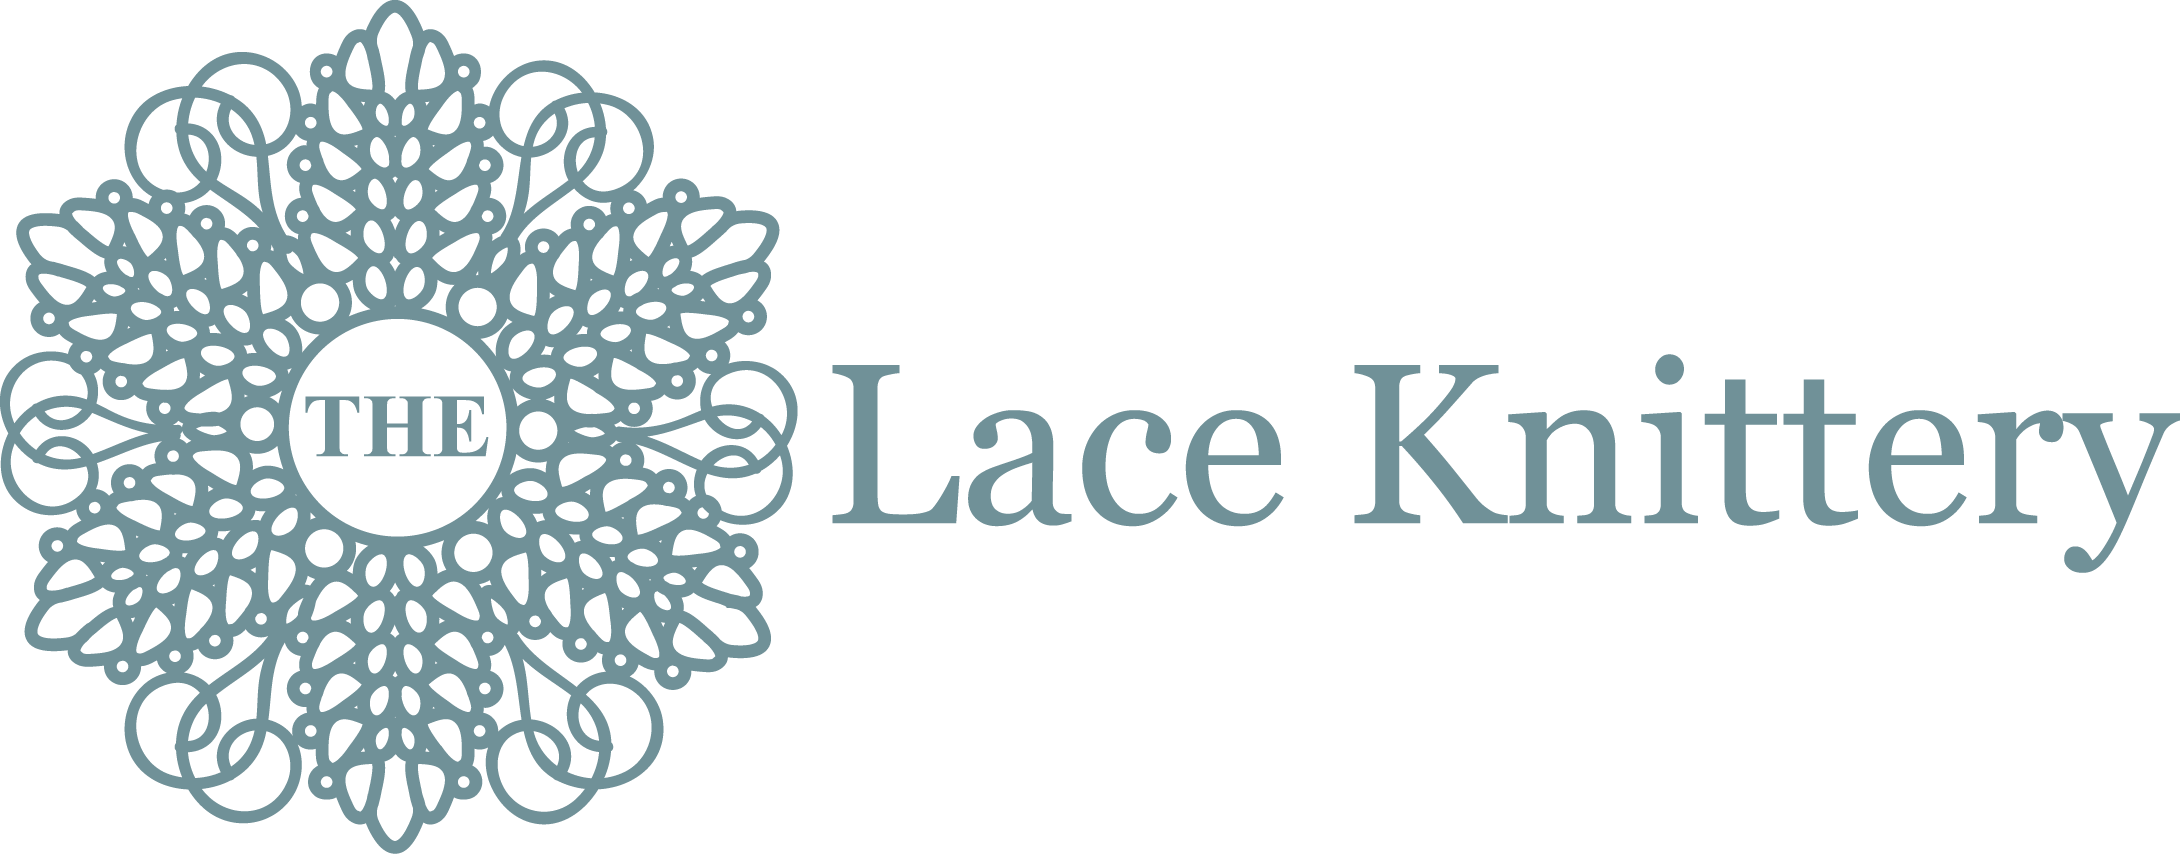 TheLaceKnittery1 - The Lace Knittery Natural Dye Yarn